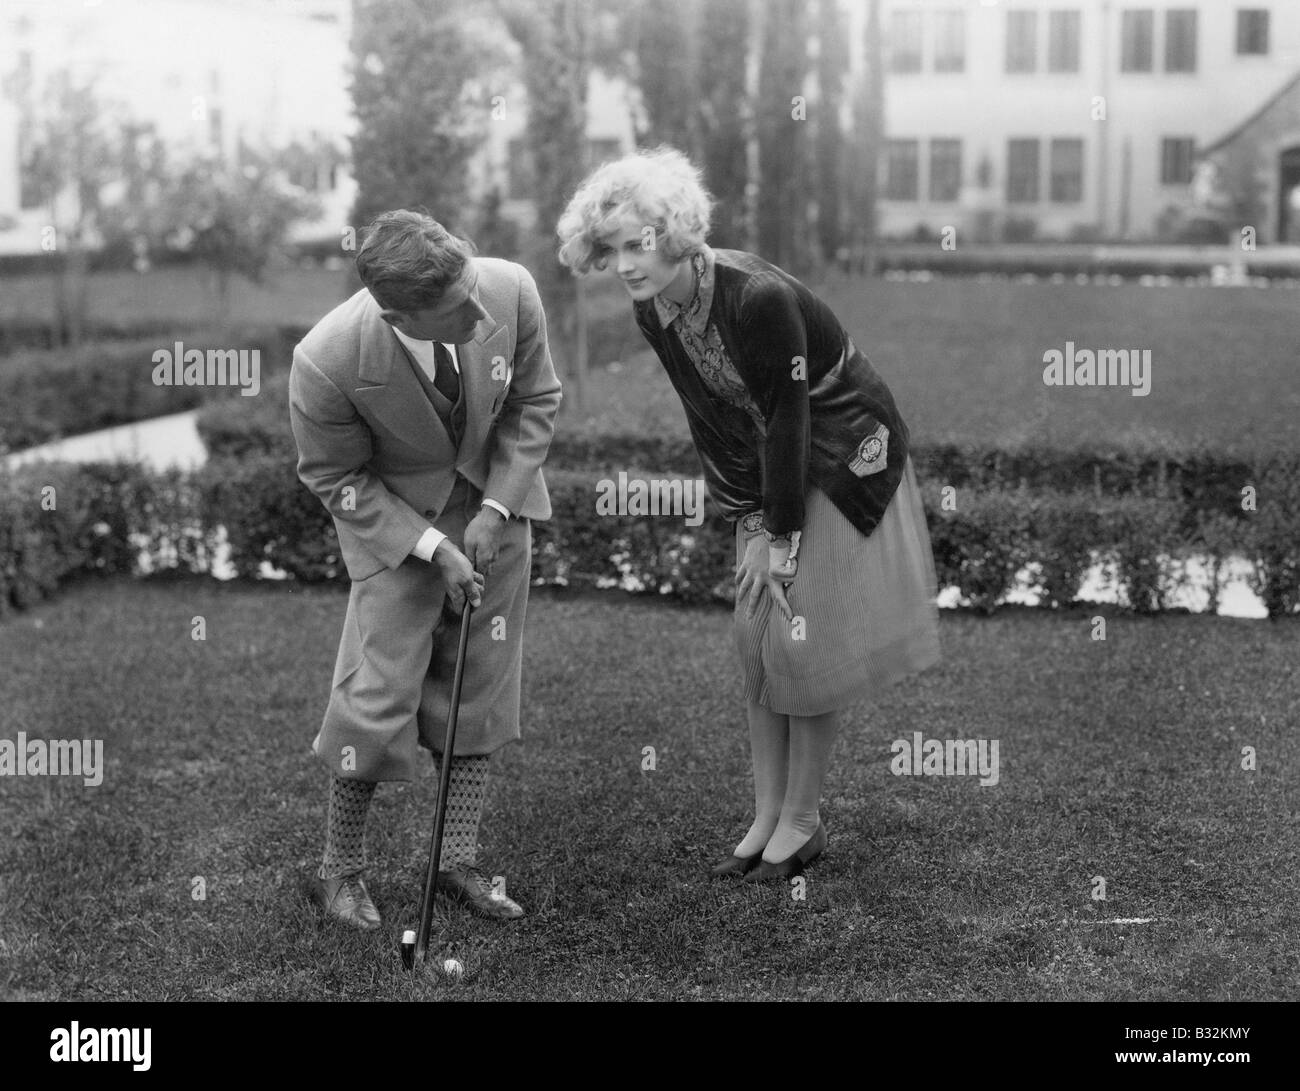 Man talking to woman while golfing - Stock Image